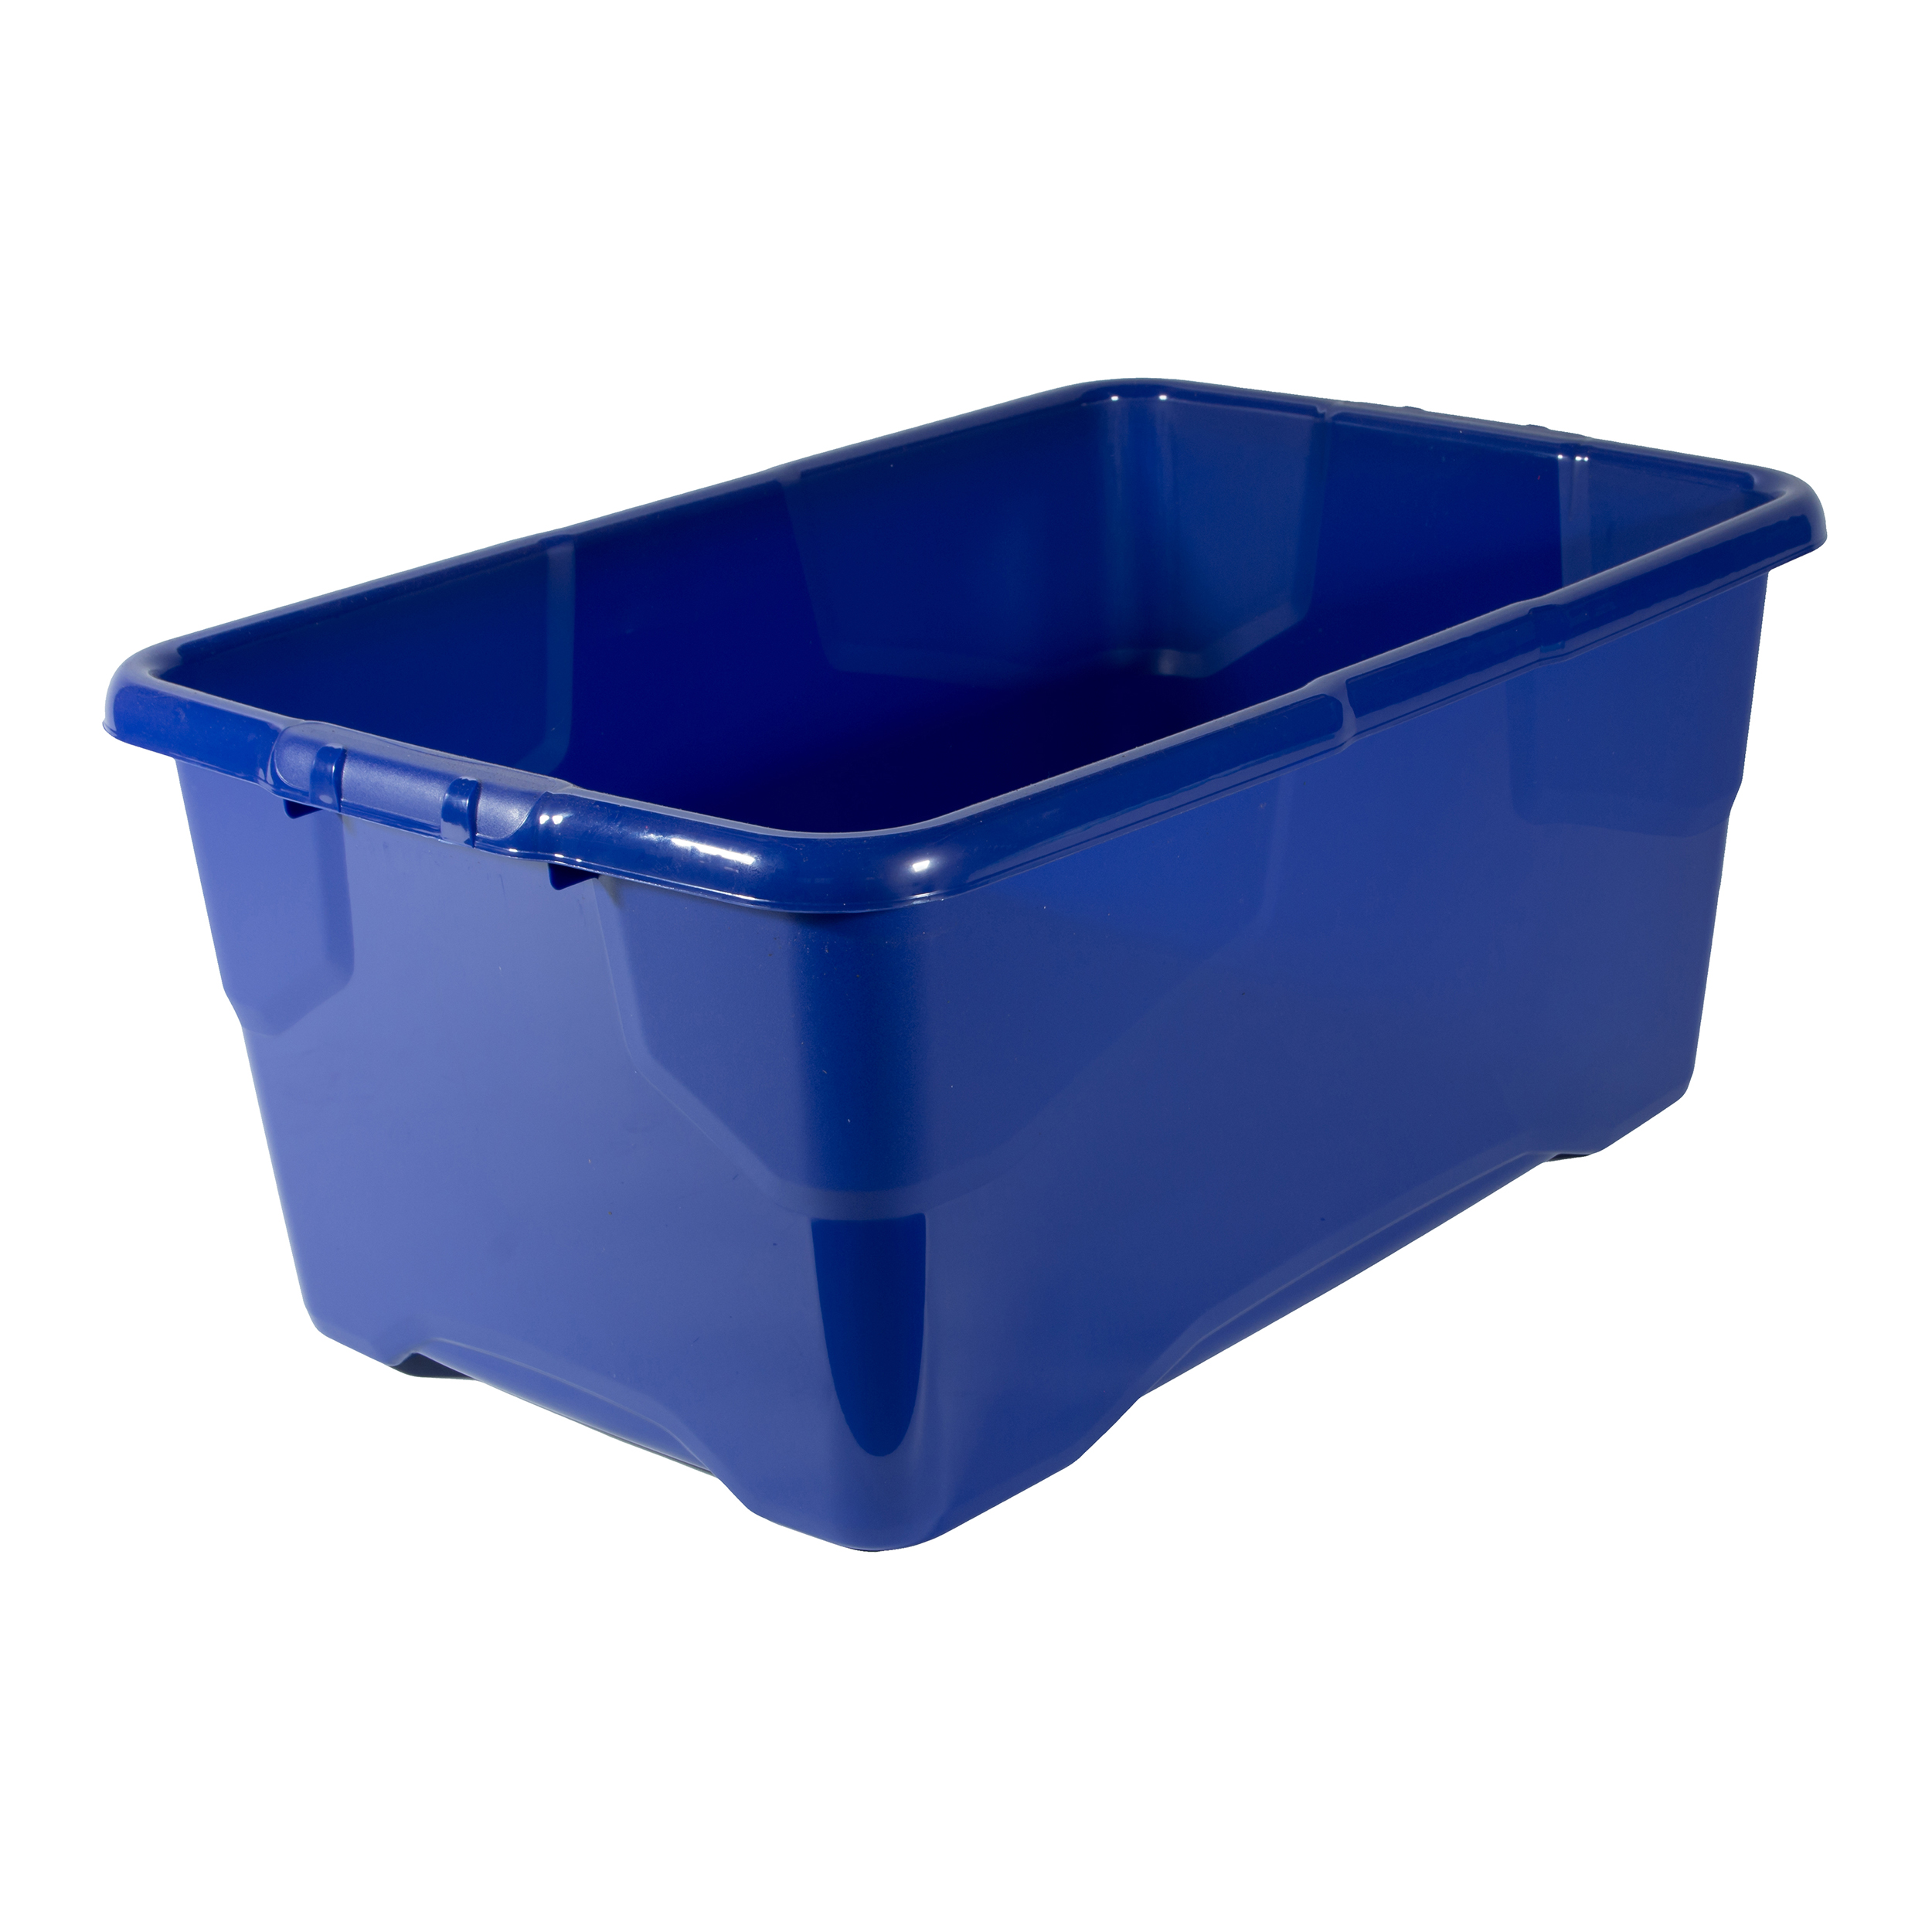 File storage boxes or organizers Strata Curve Box 42 Litre Blue Ref XW202B-LBL